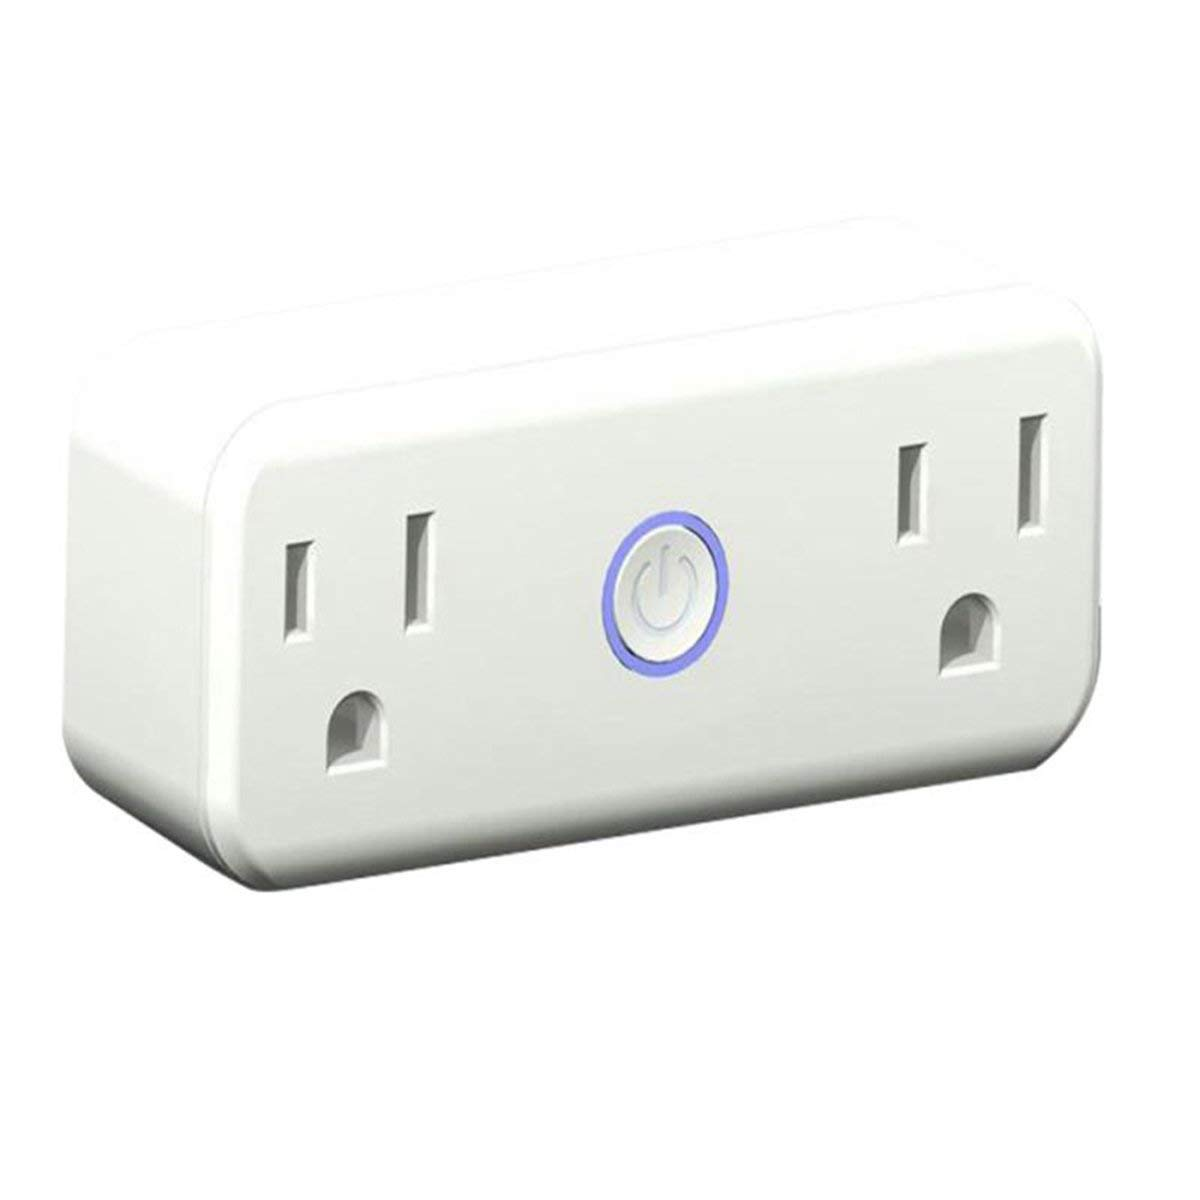 WIFI Smart Plug Mini Outlet with Energy Monitoring Works with Amazon Alexa Echo and Google Assistant … (White)